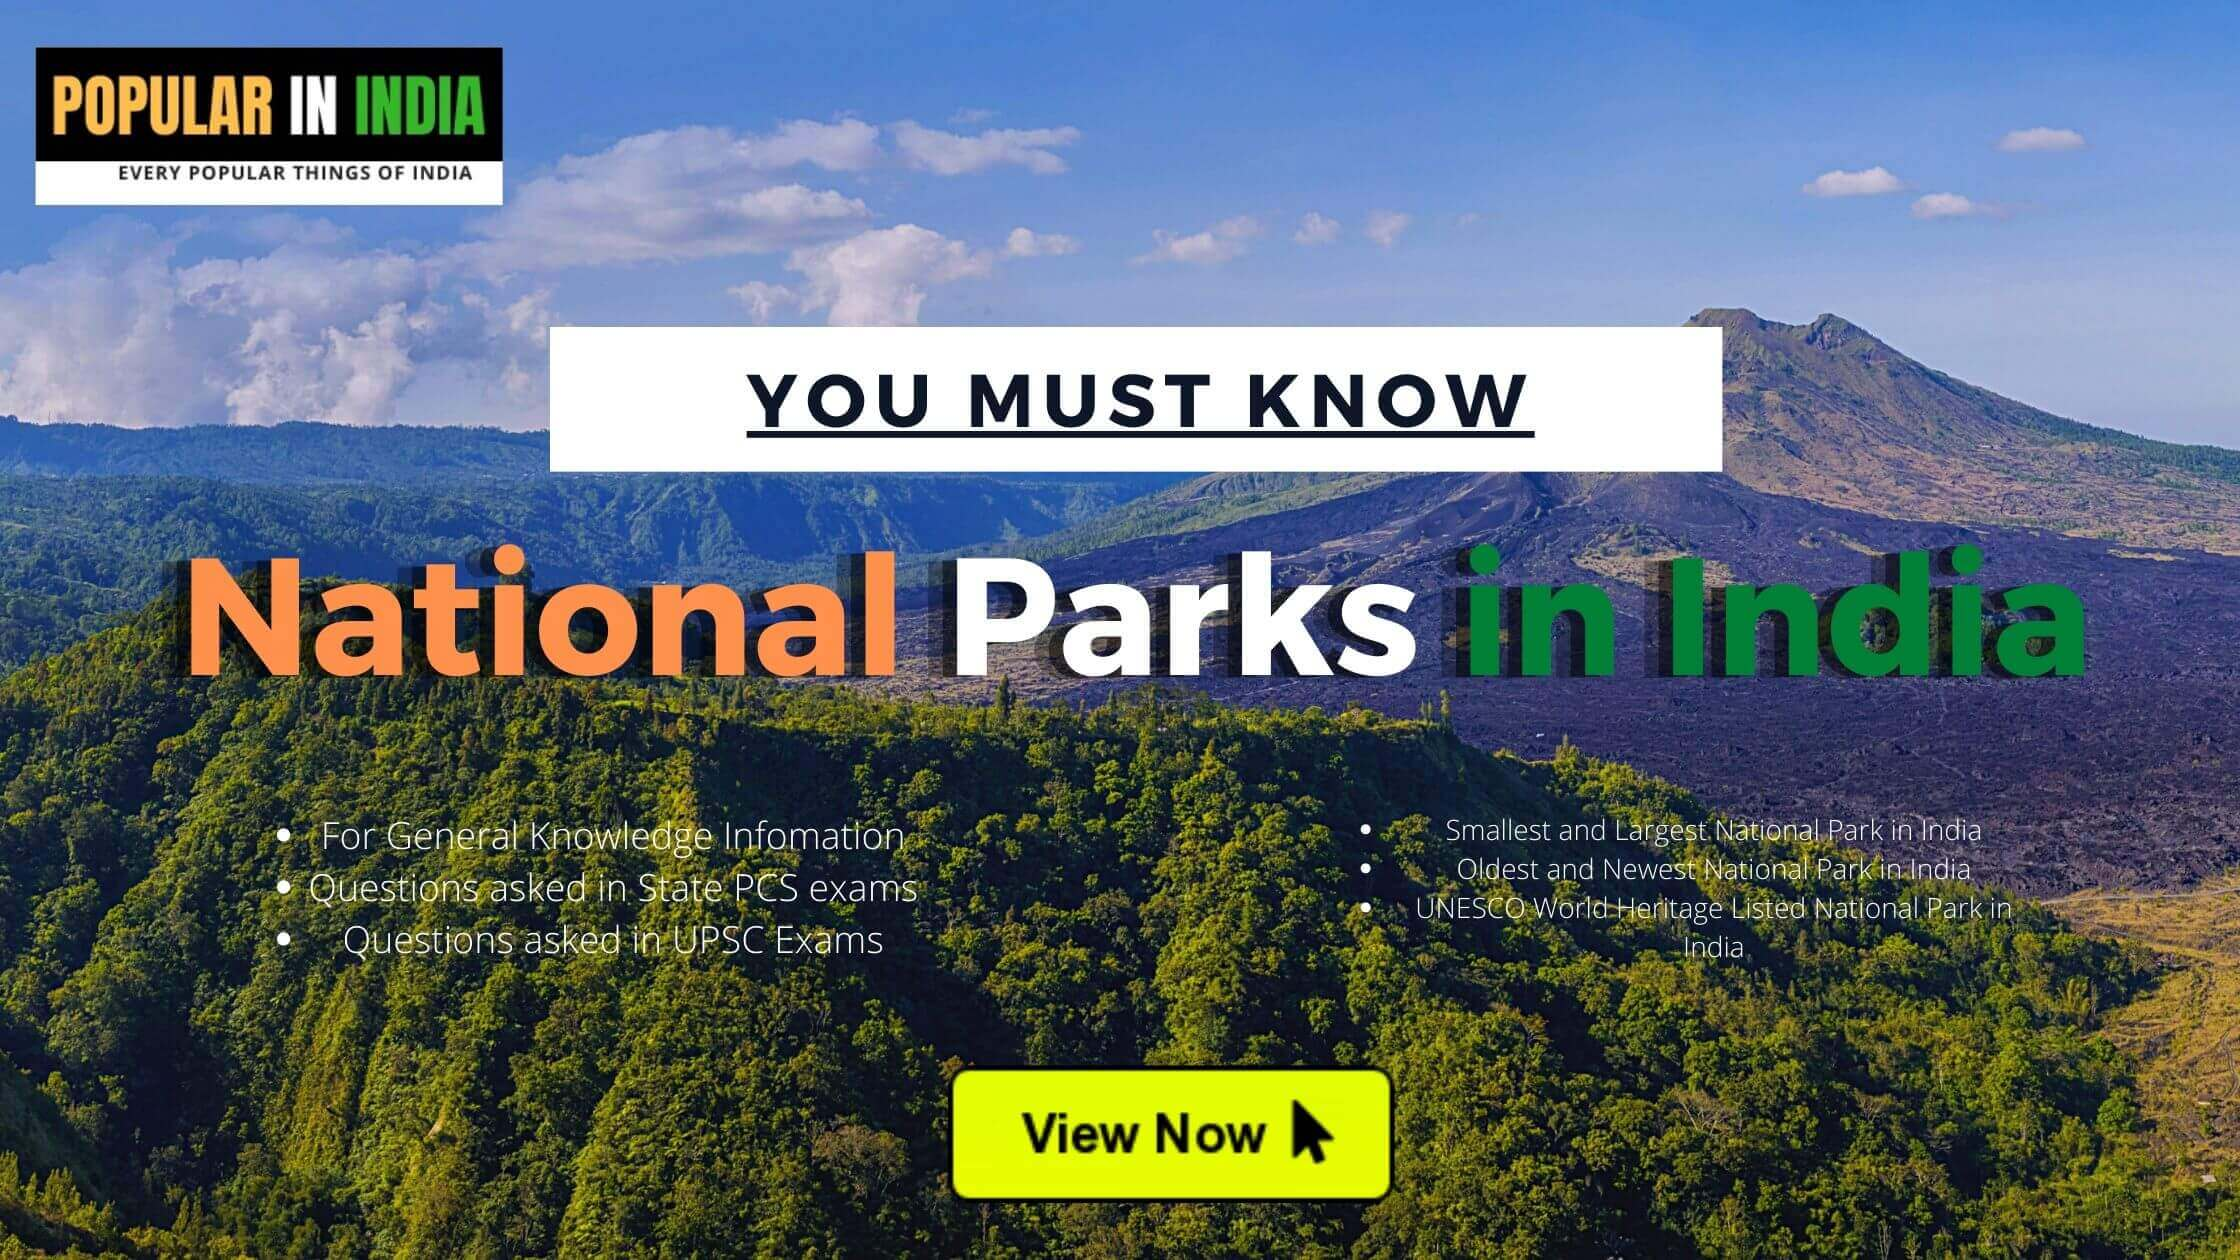 National Parks in India Popular in India